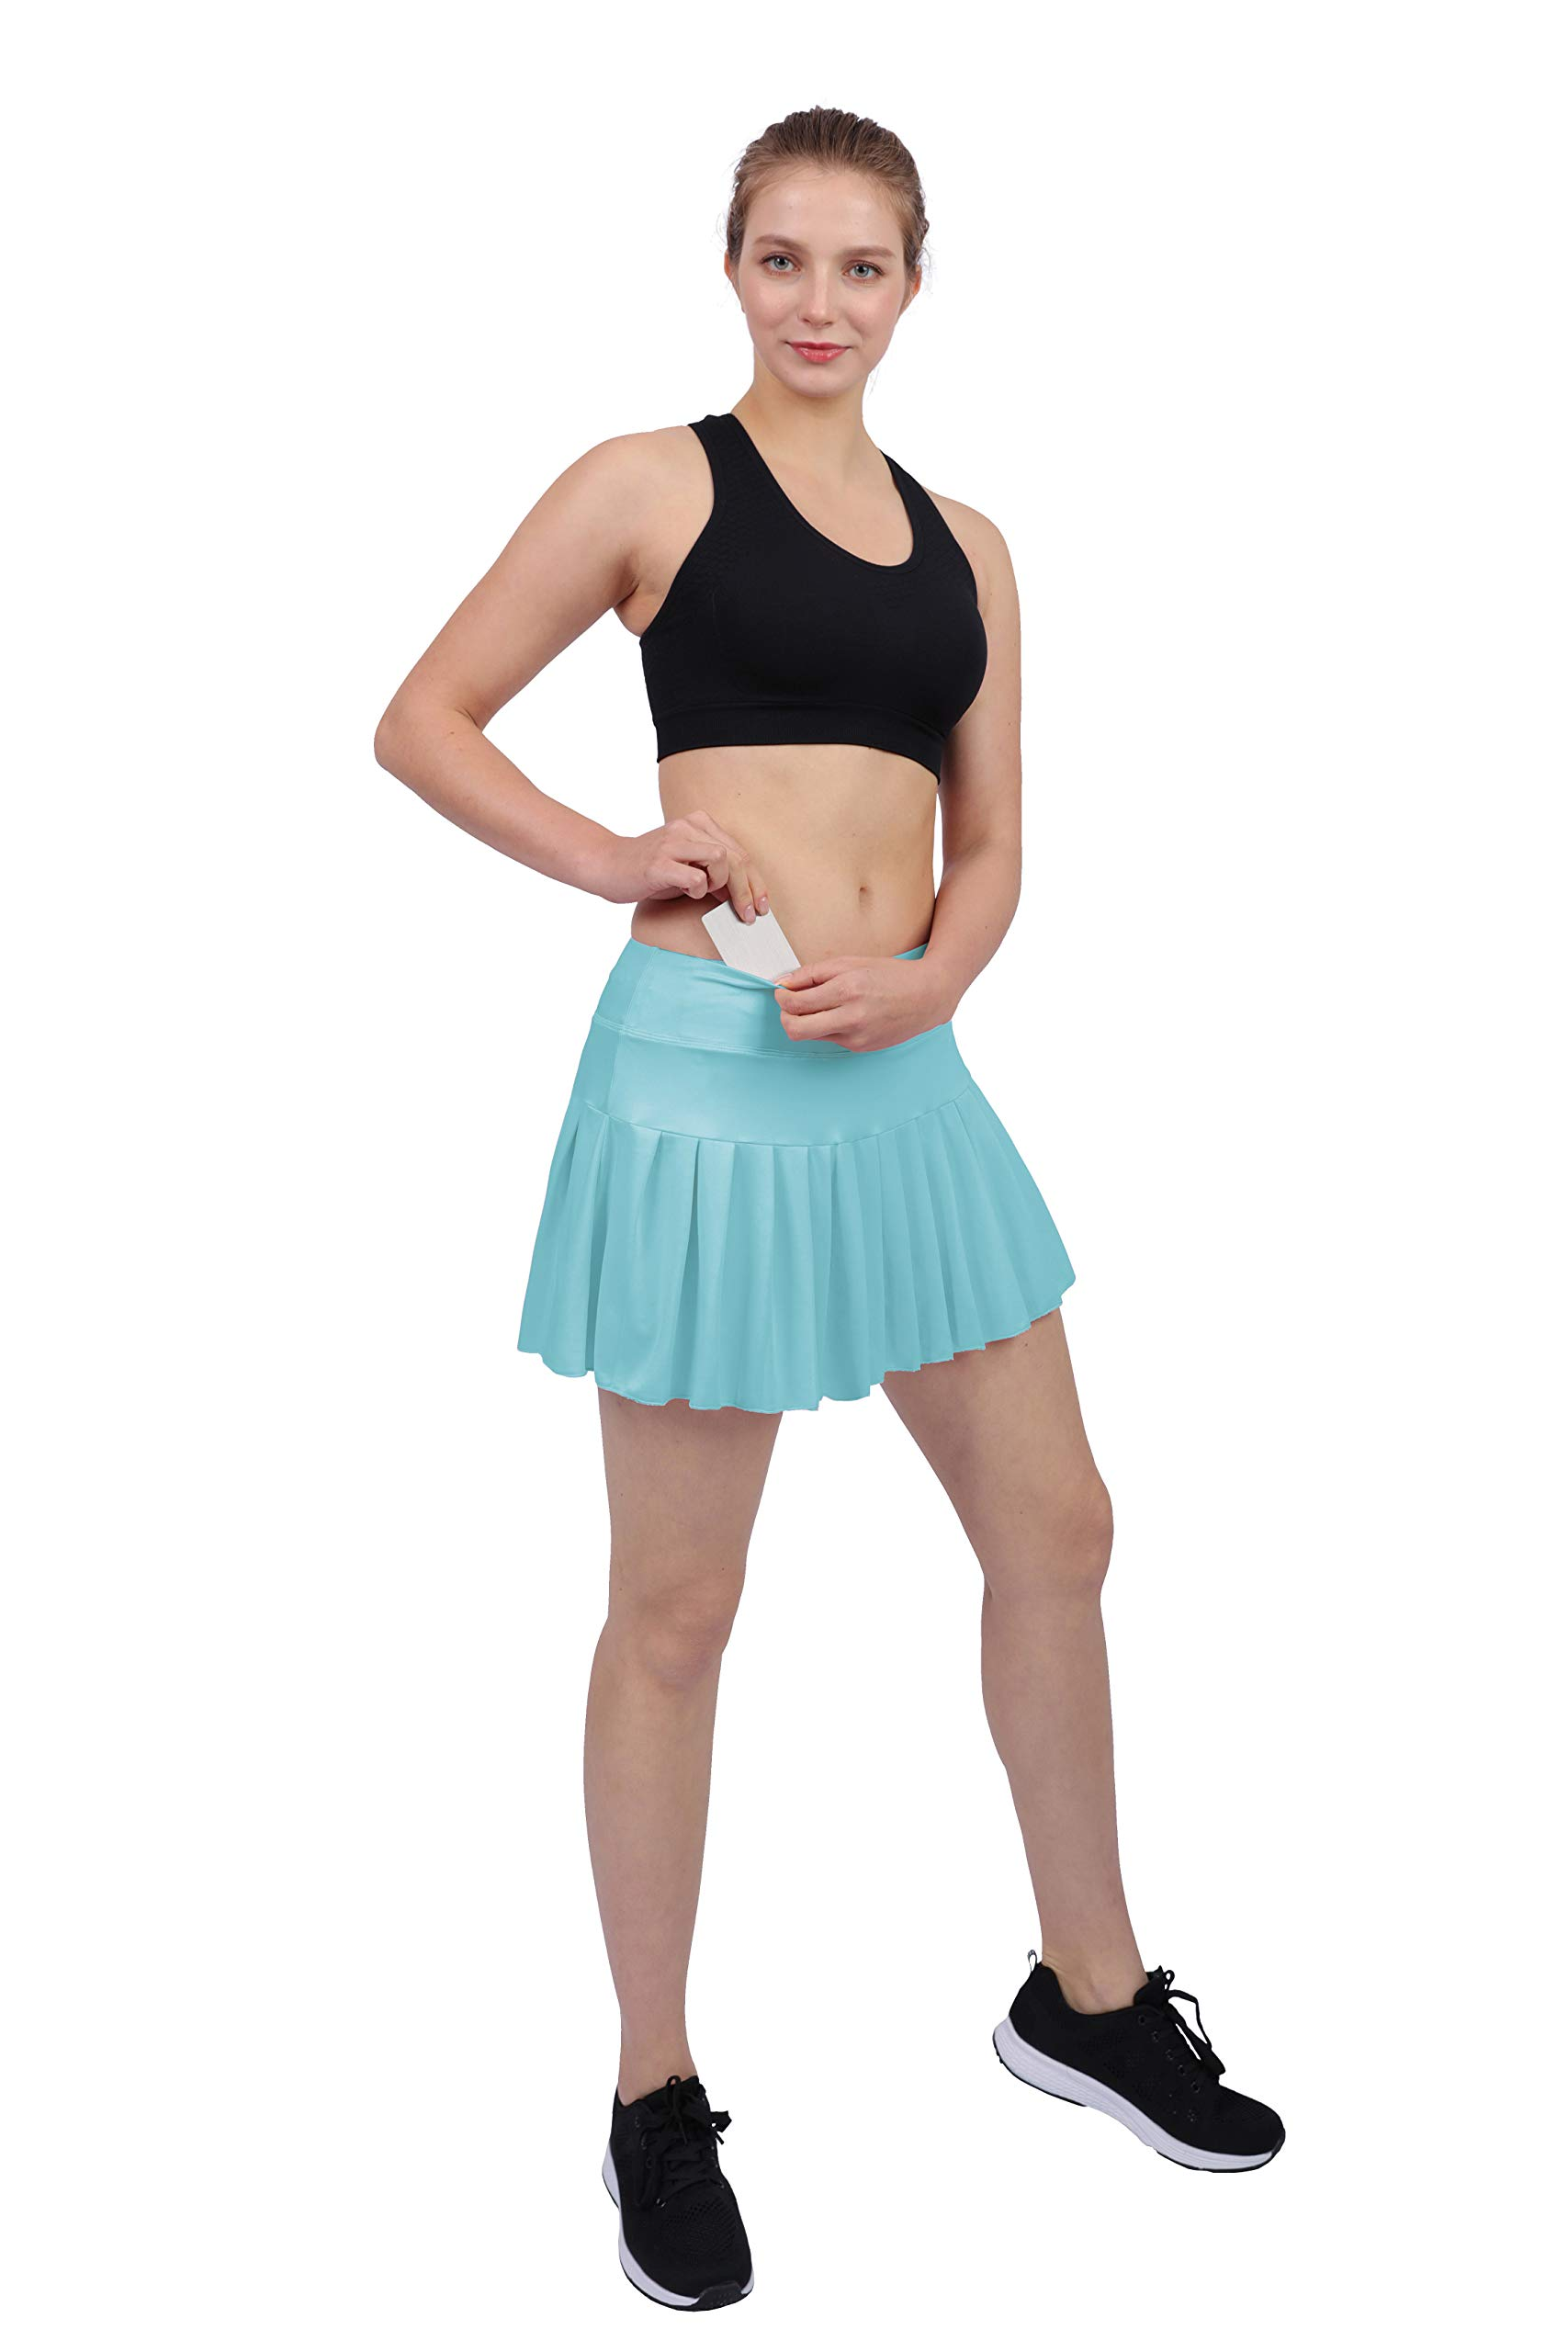 Womens Tennis Pleated Skorts Golf Workout High Waist Biult in Skirts Sports Active Wear with Pockets Light Blue by HonourSex